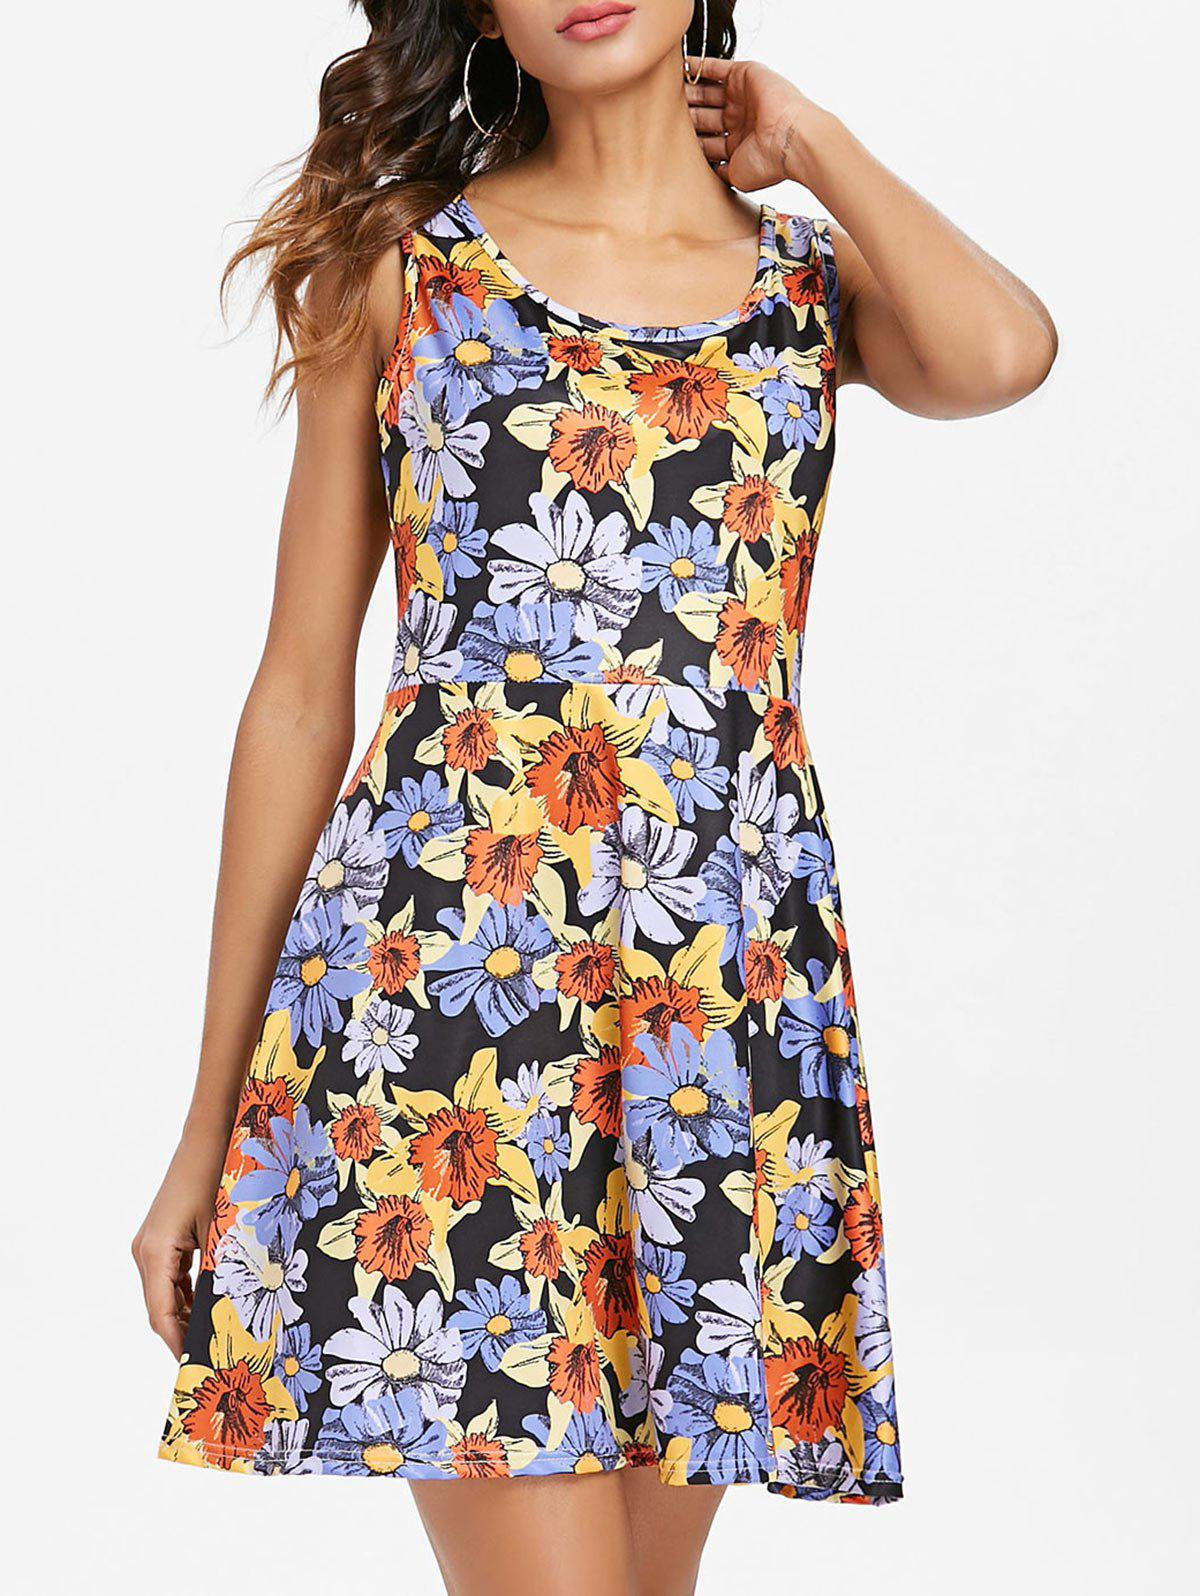 Sleeveless Floral Pattern Mini Dress - multicolor L